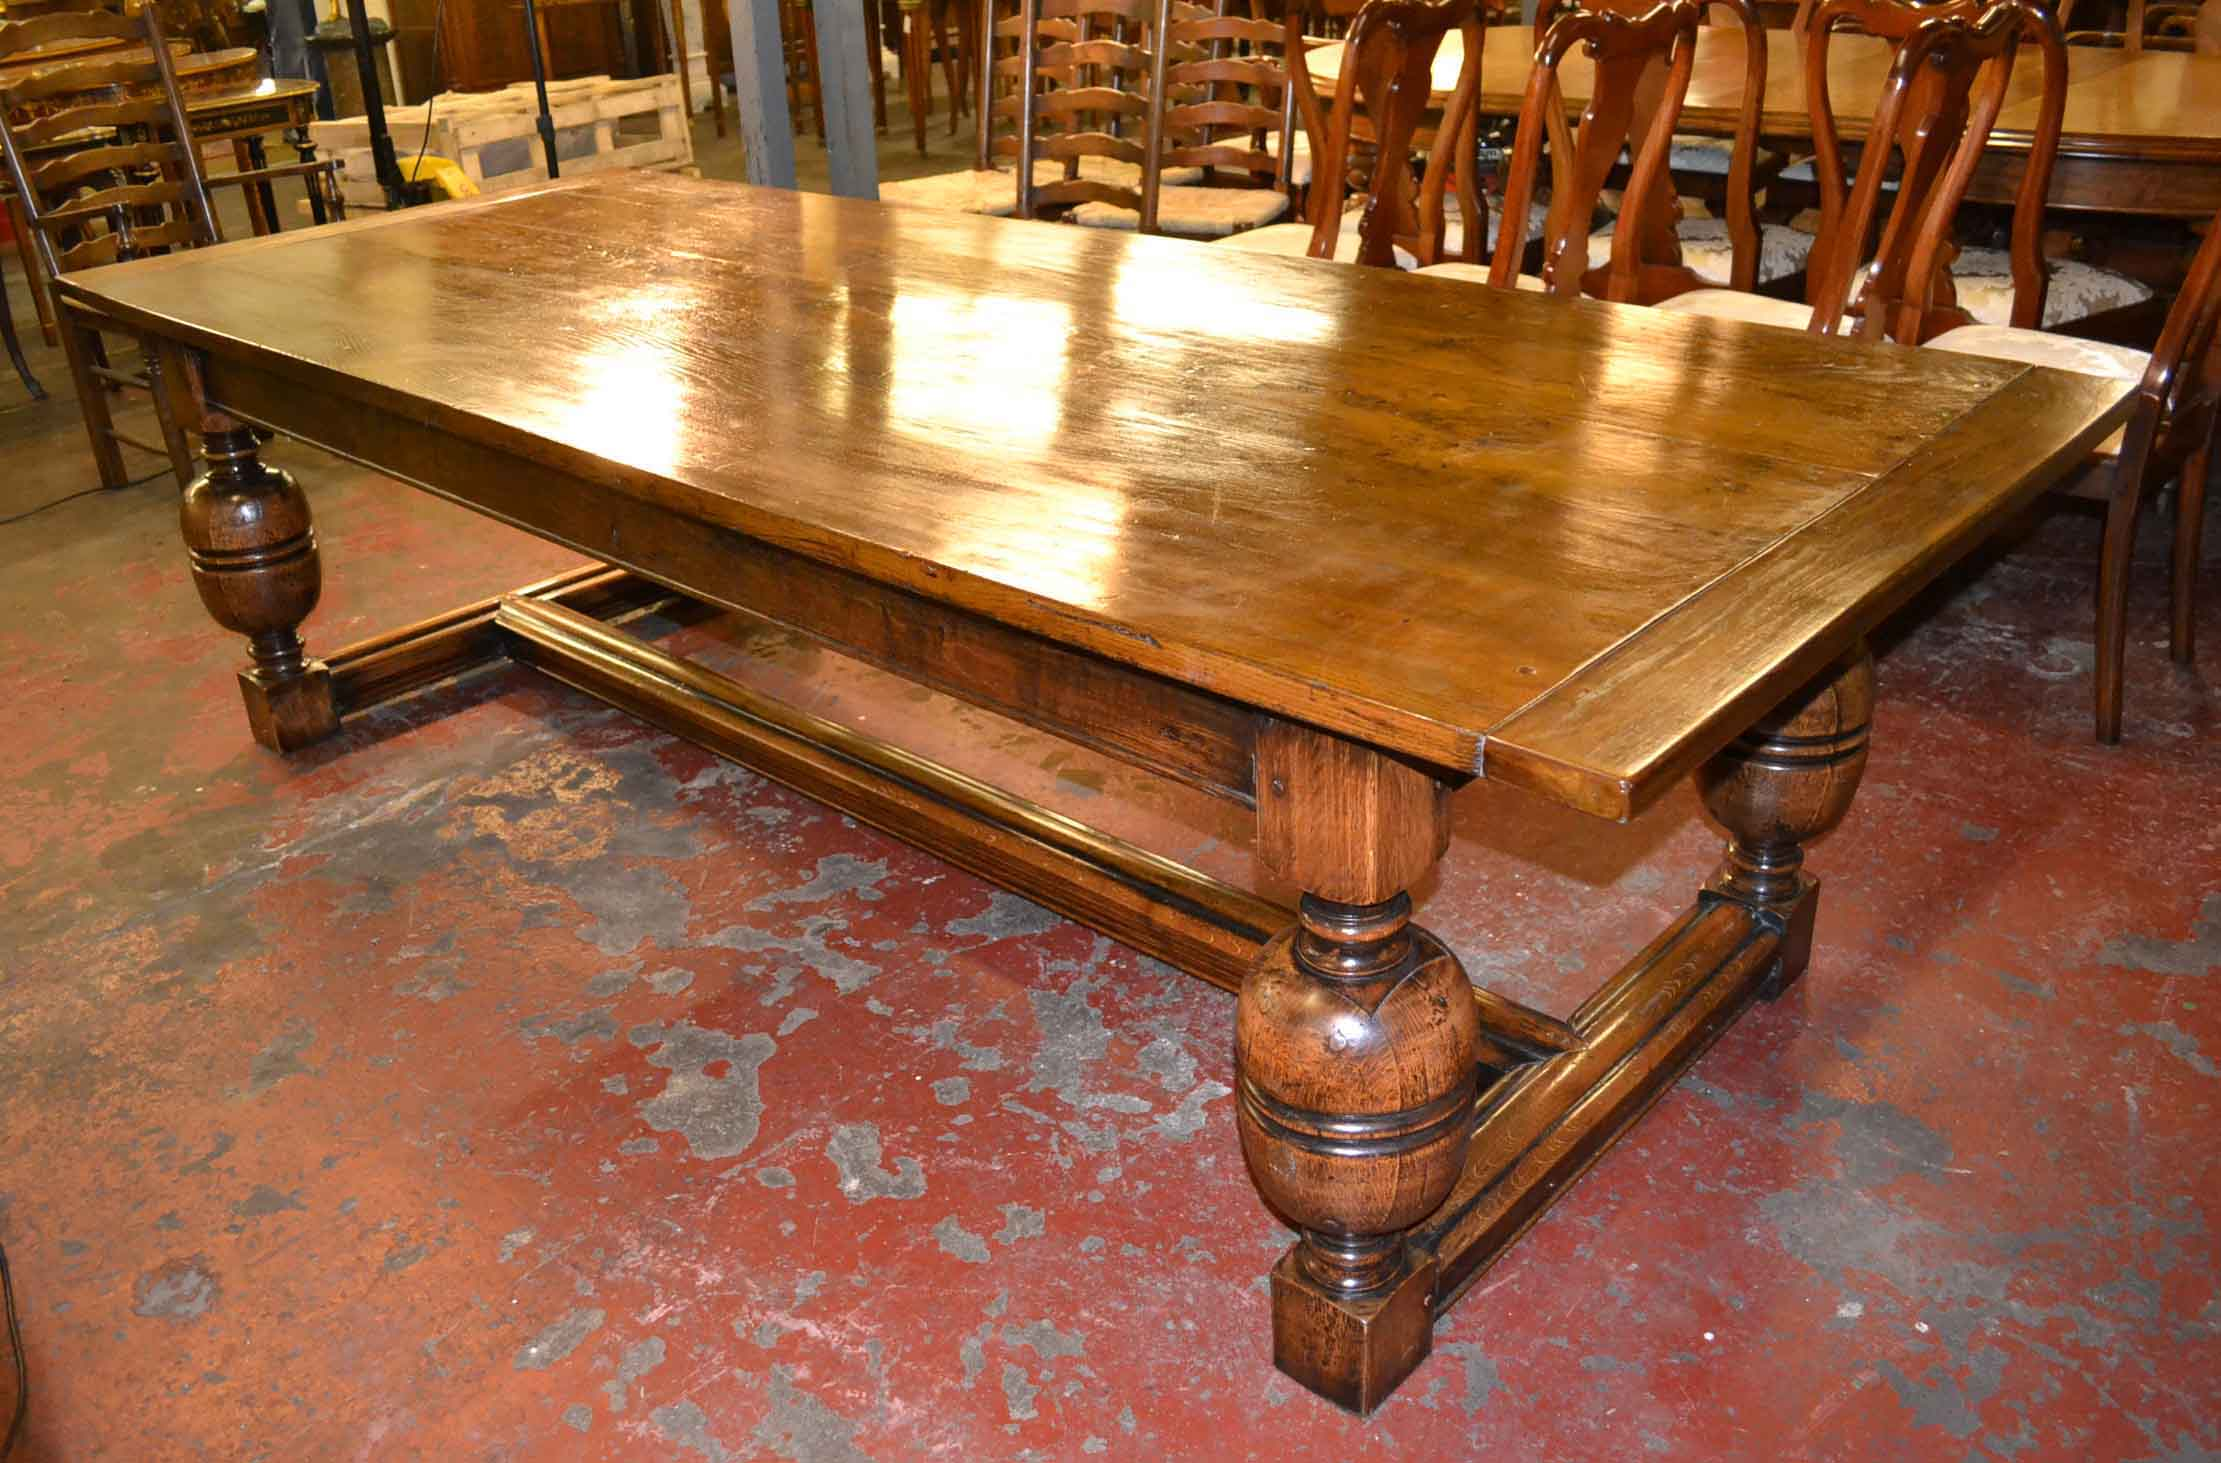 Vintage solid oak refectory dining table